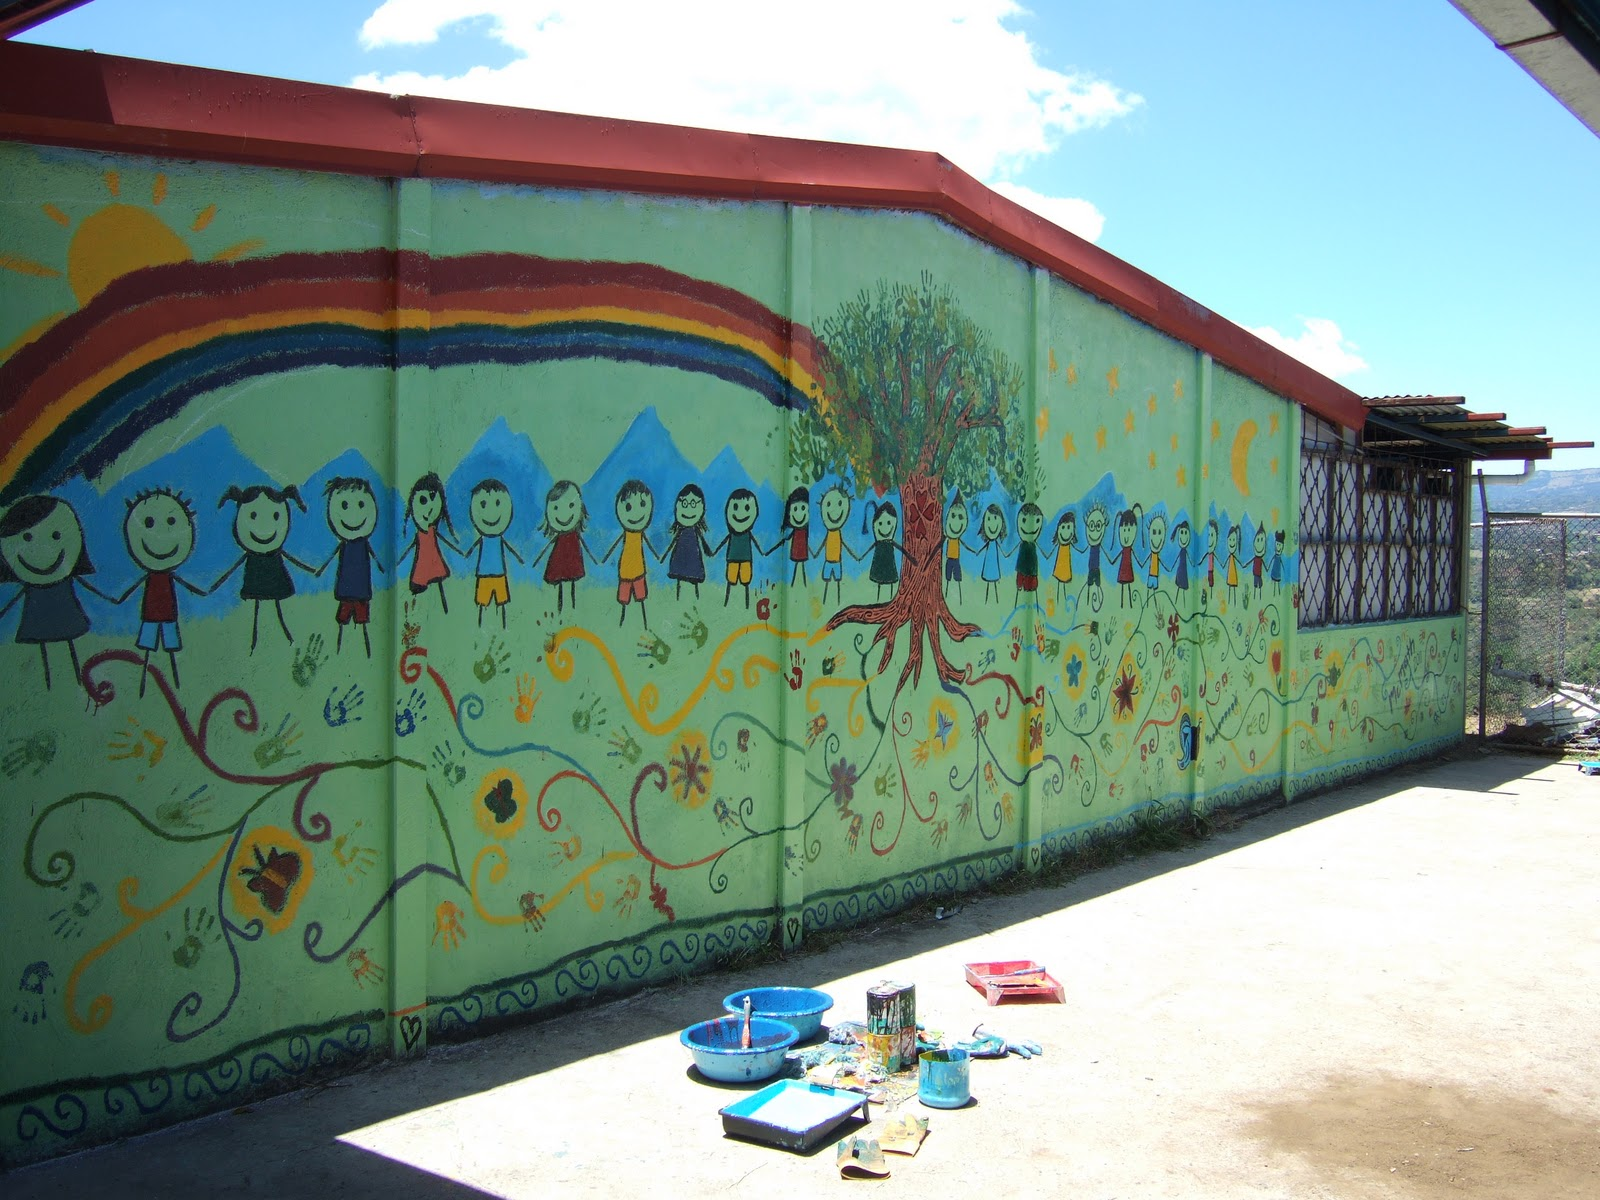 We Have Also Completed A Beautiful Interactive Mural Finished With The  Heart Warming Touch Of The Volunteer´s Hand Prints As Tree Leaves.